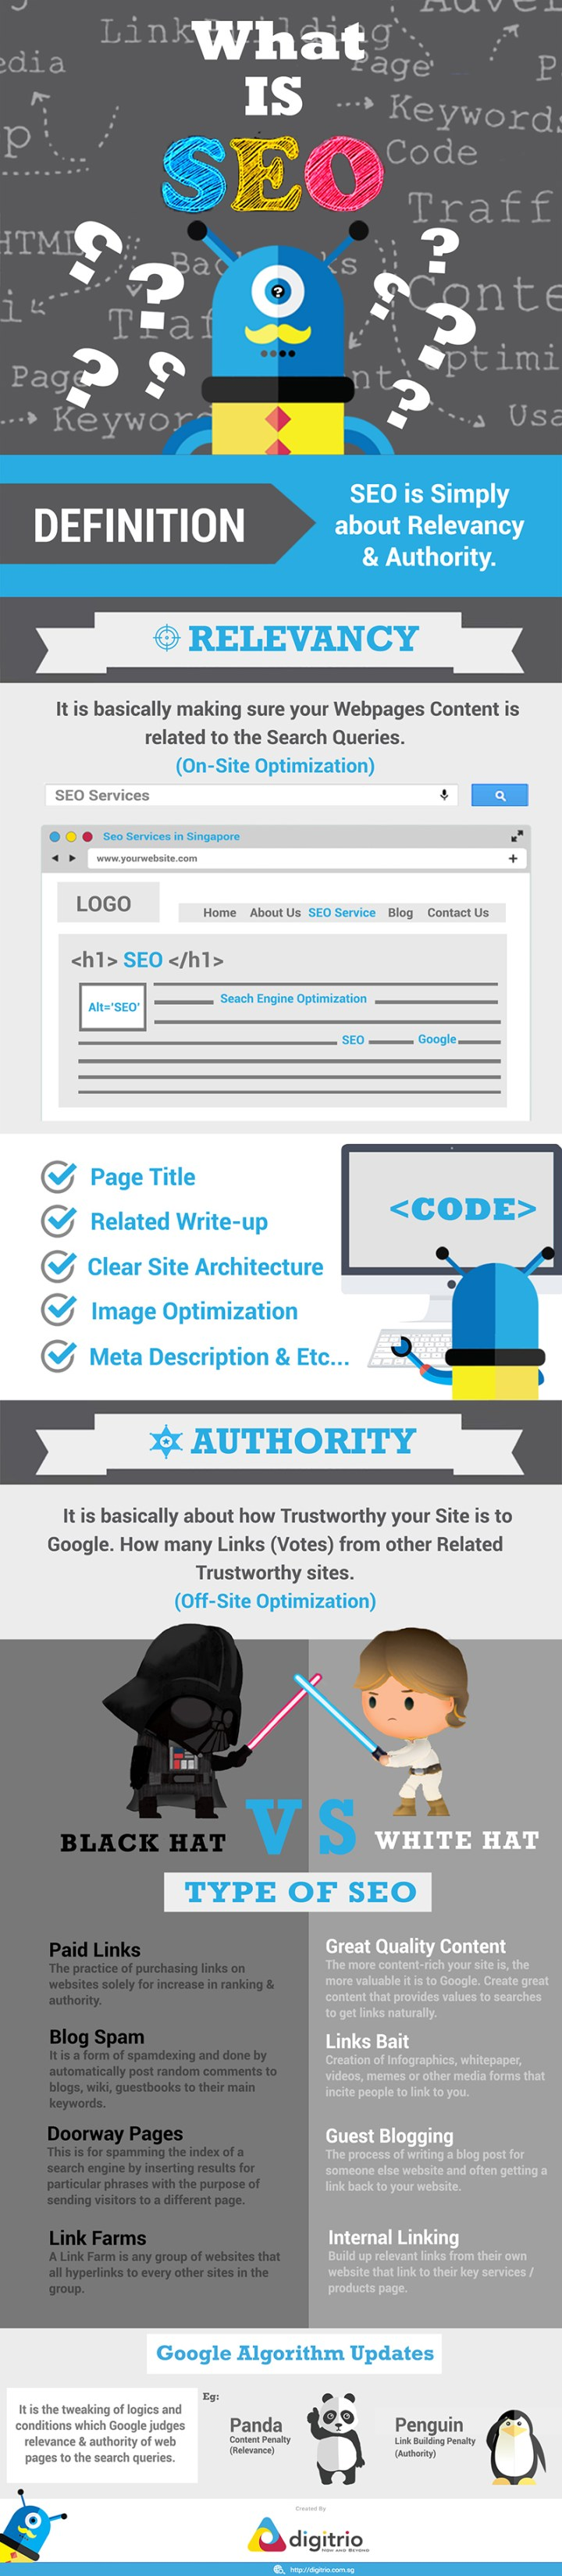 Digitrio-what-is-seo-infographic